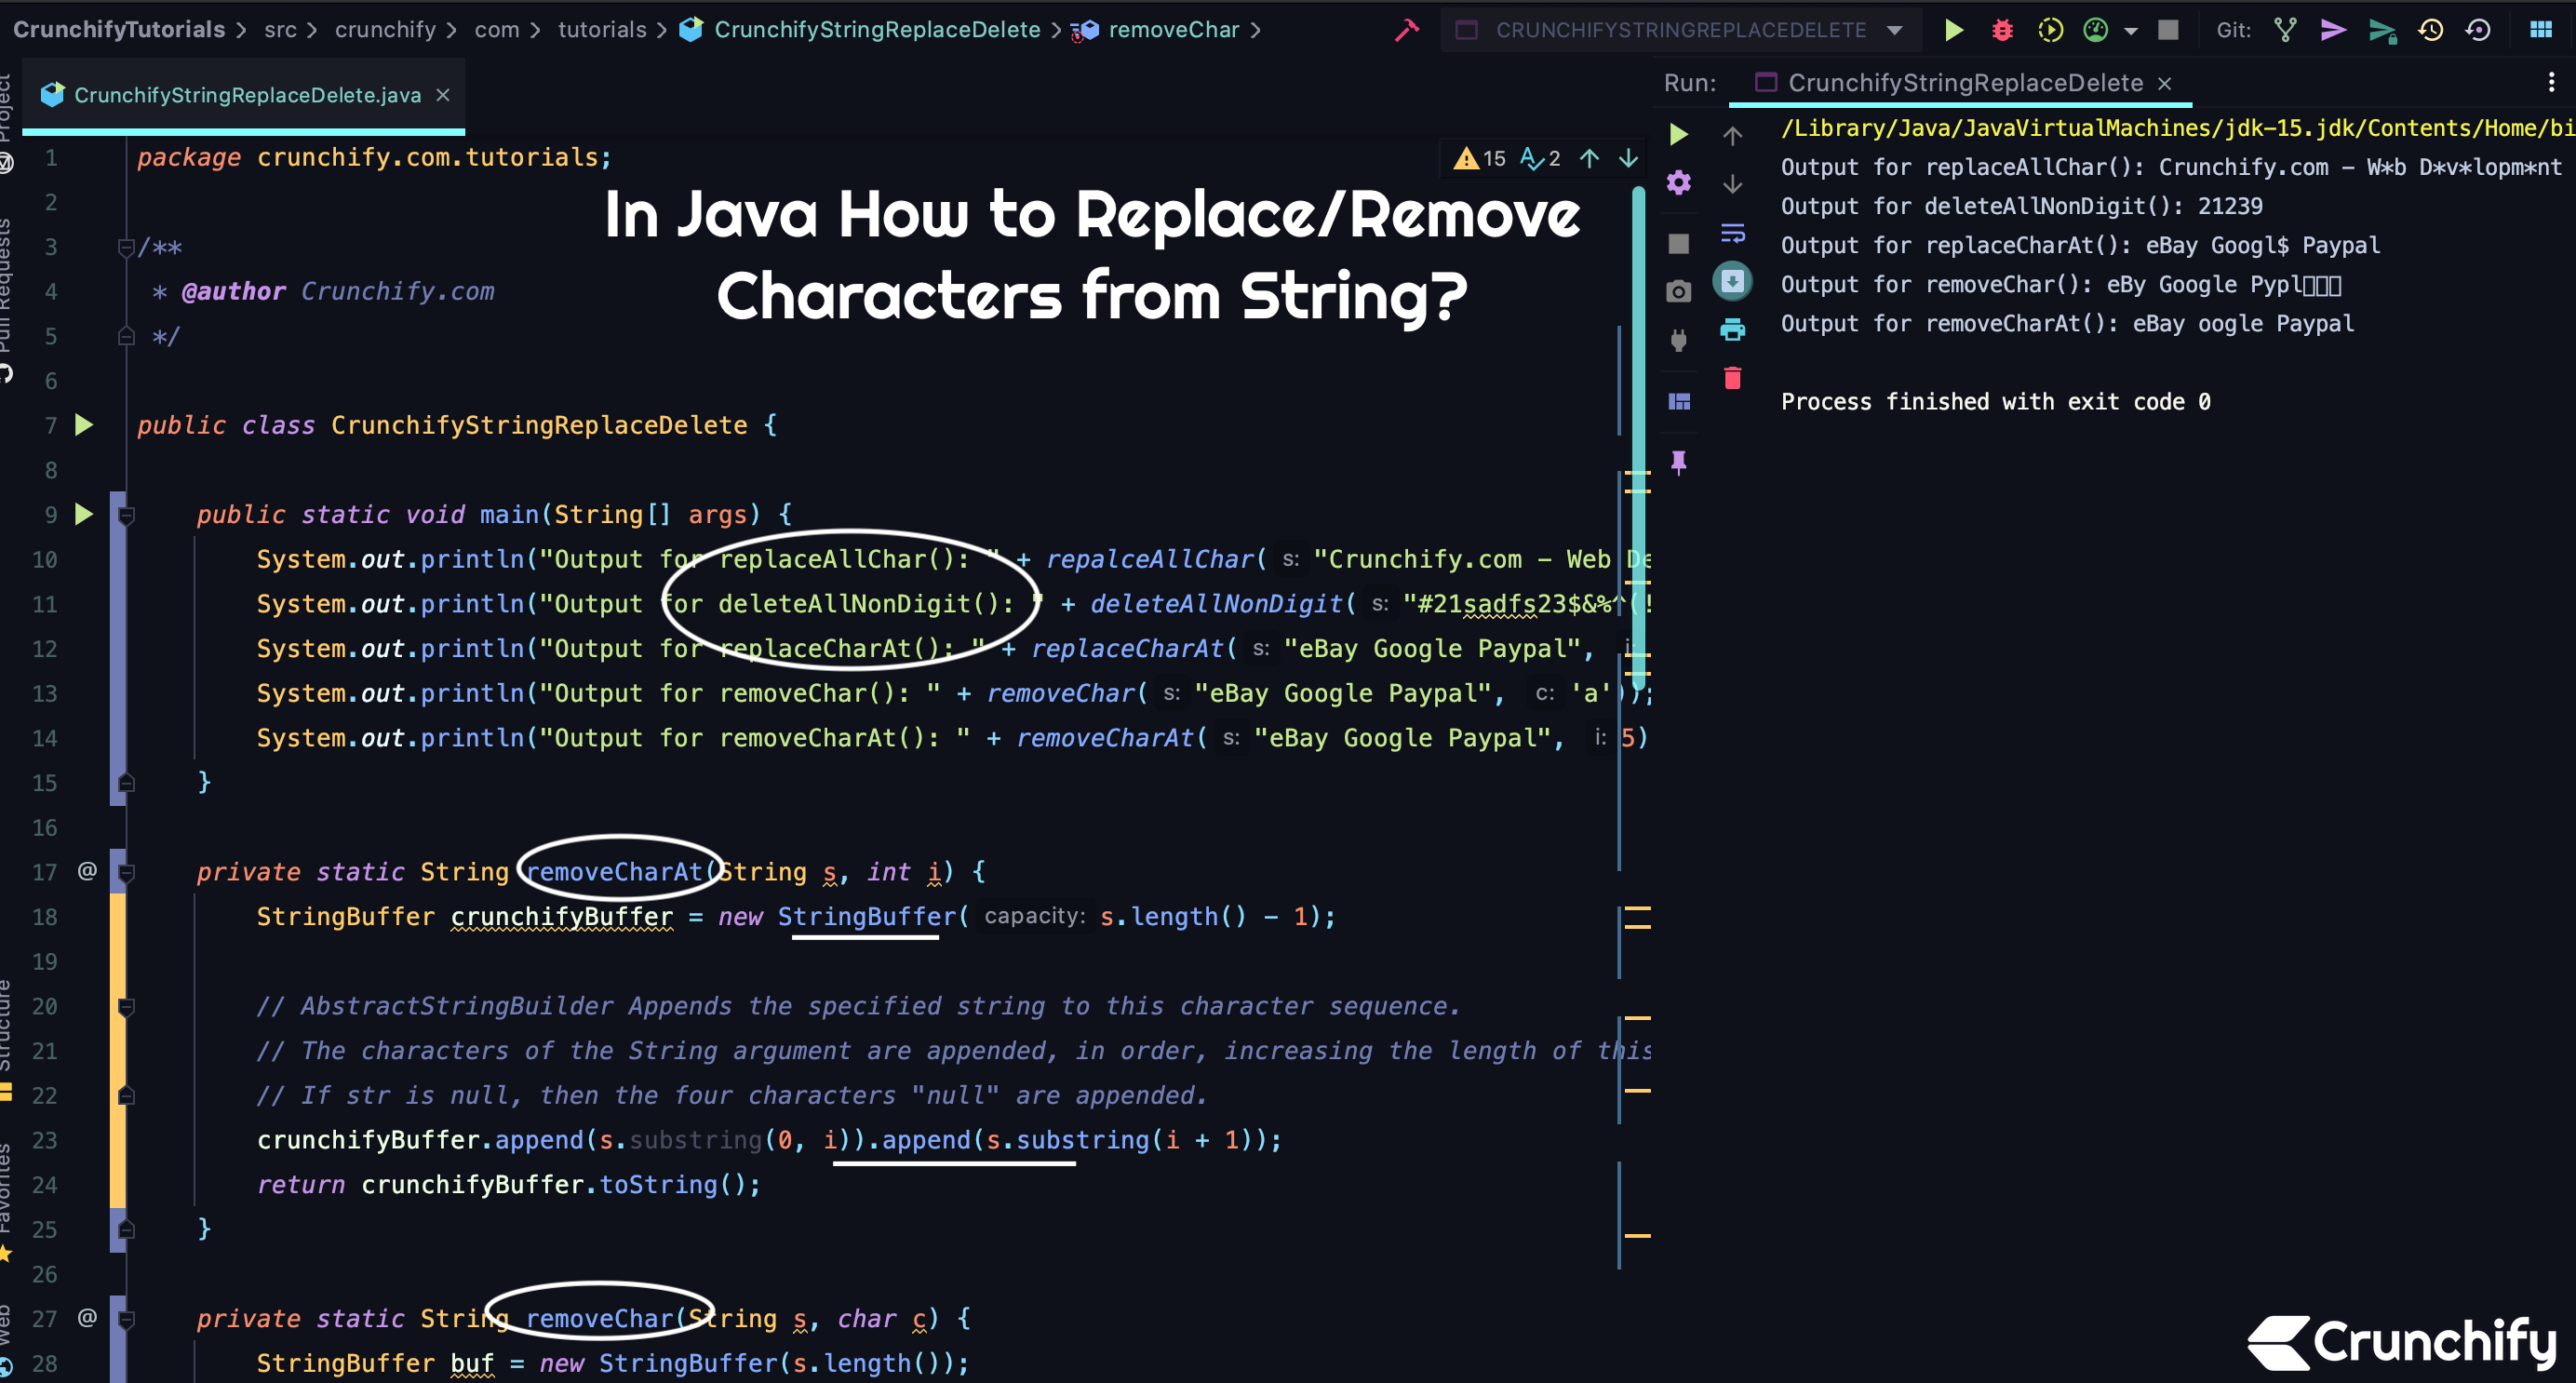 In Java How to Replace/Remove Characters from String?